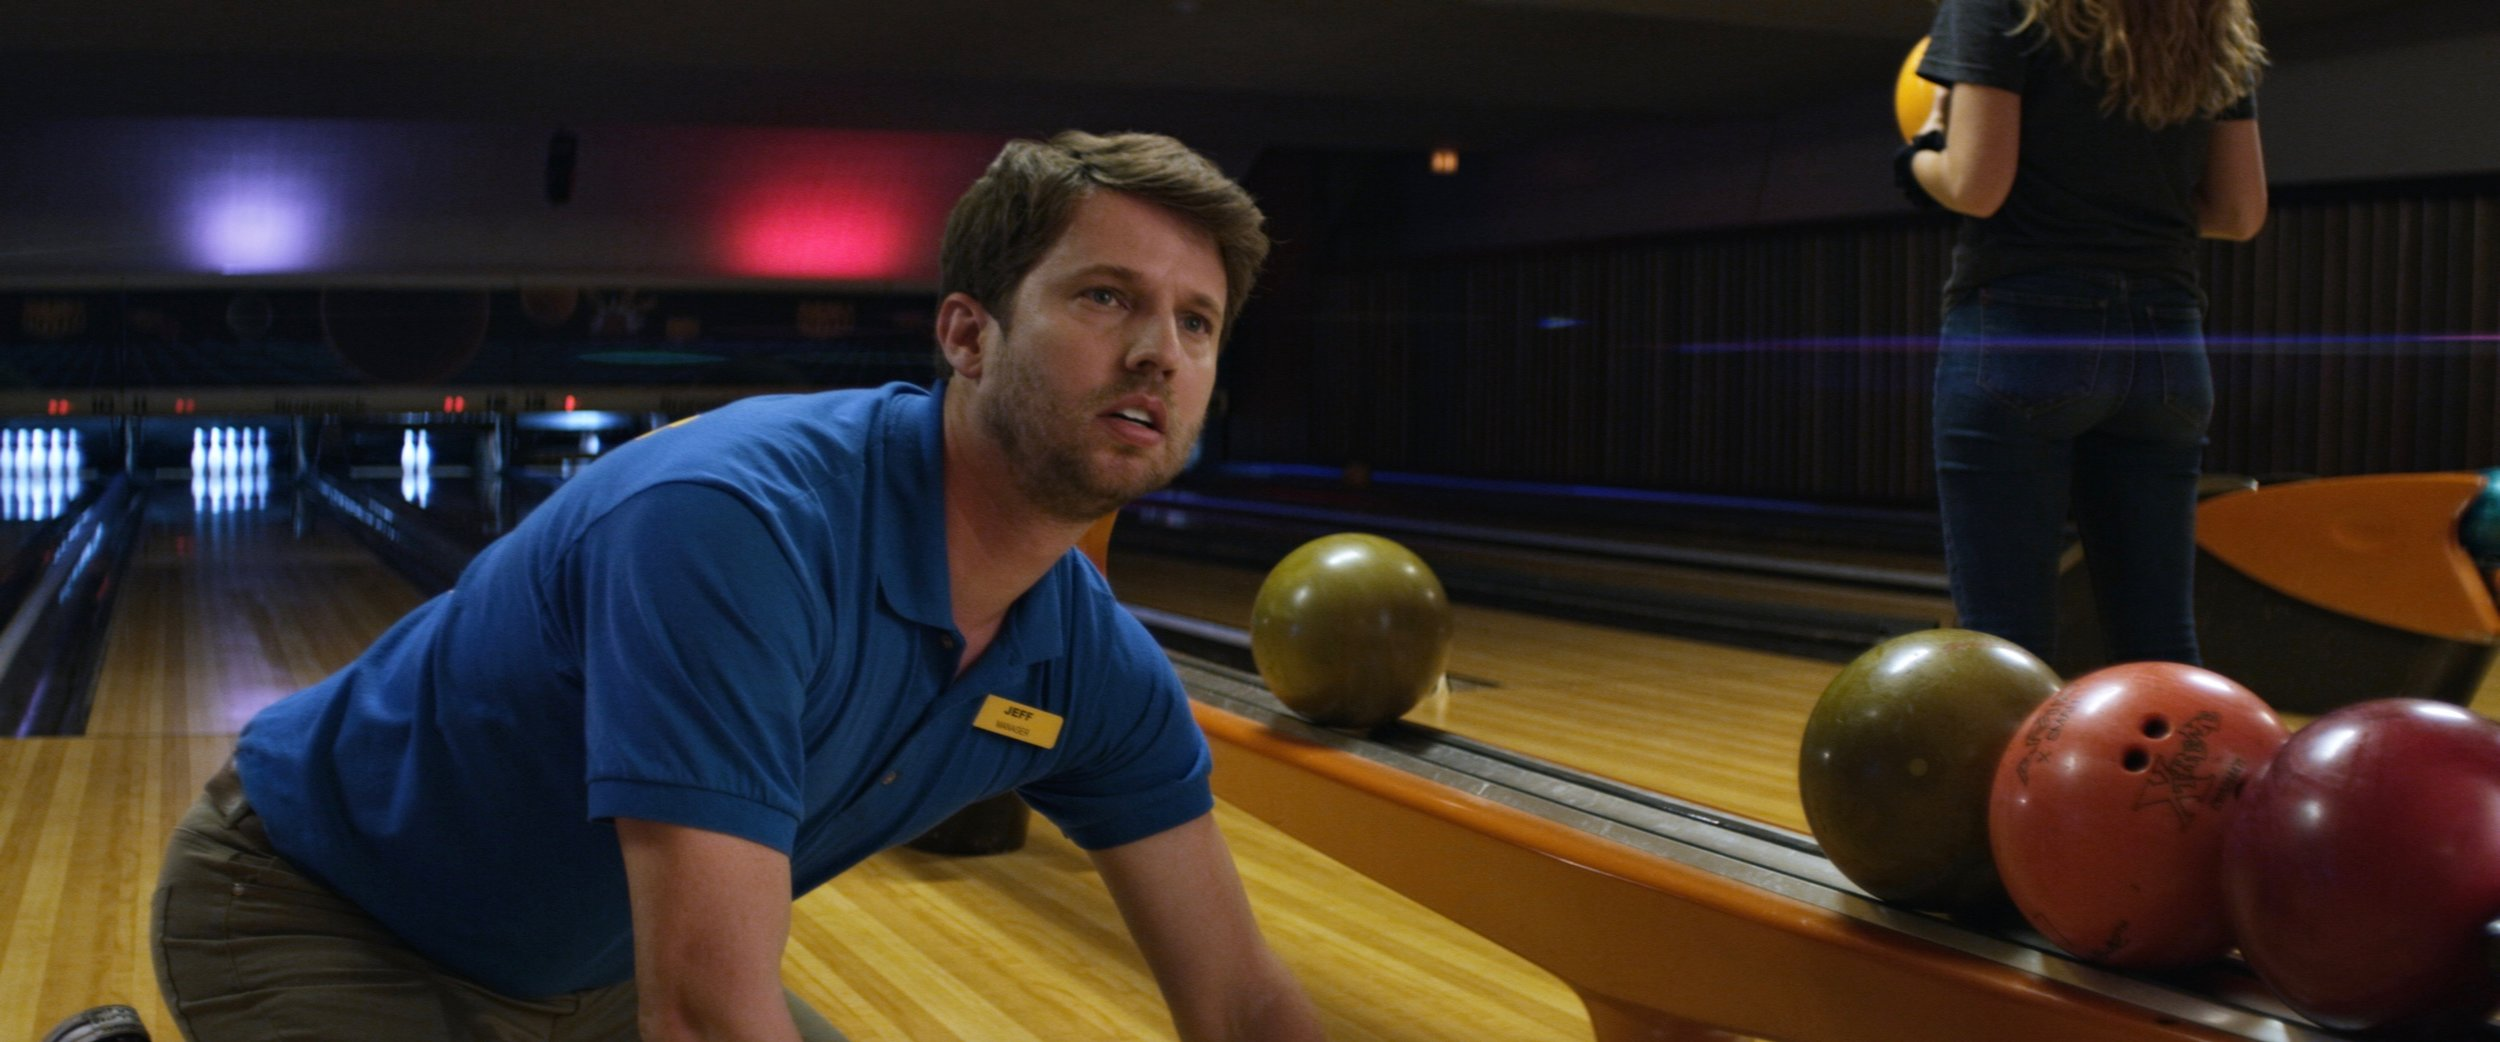 Jon Heder in WHEN JEFF TRIED TO SAVE THE WORLD